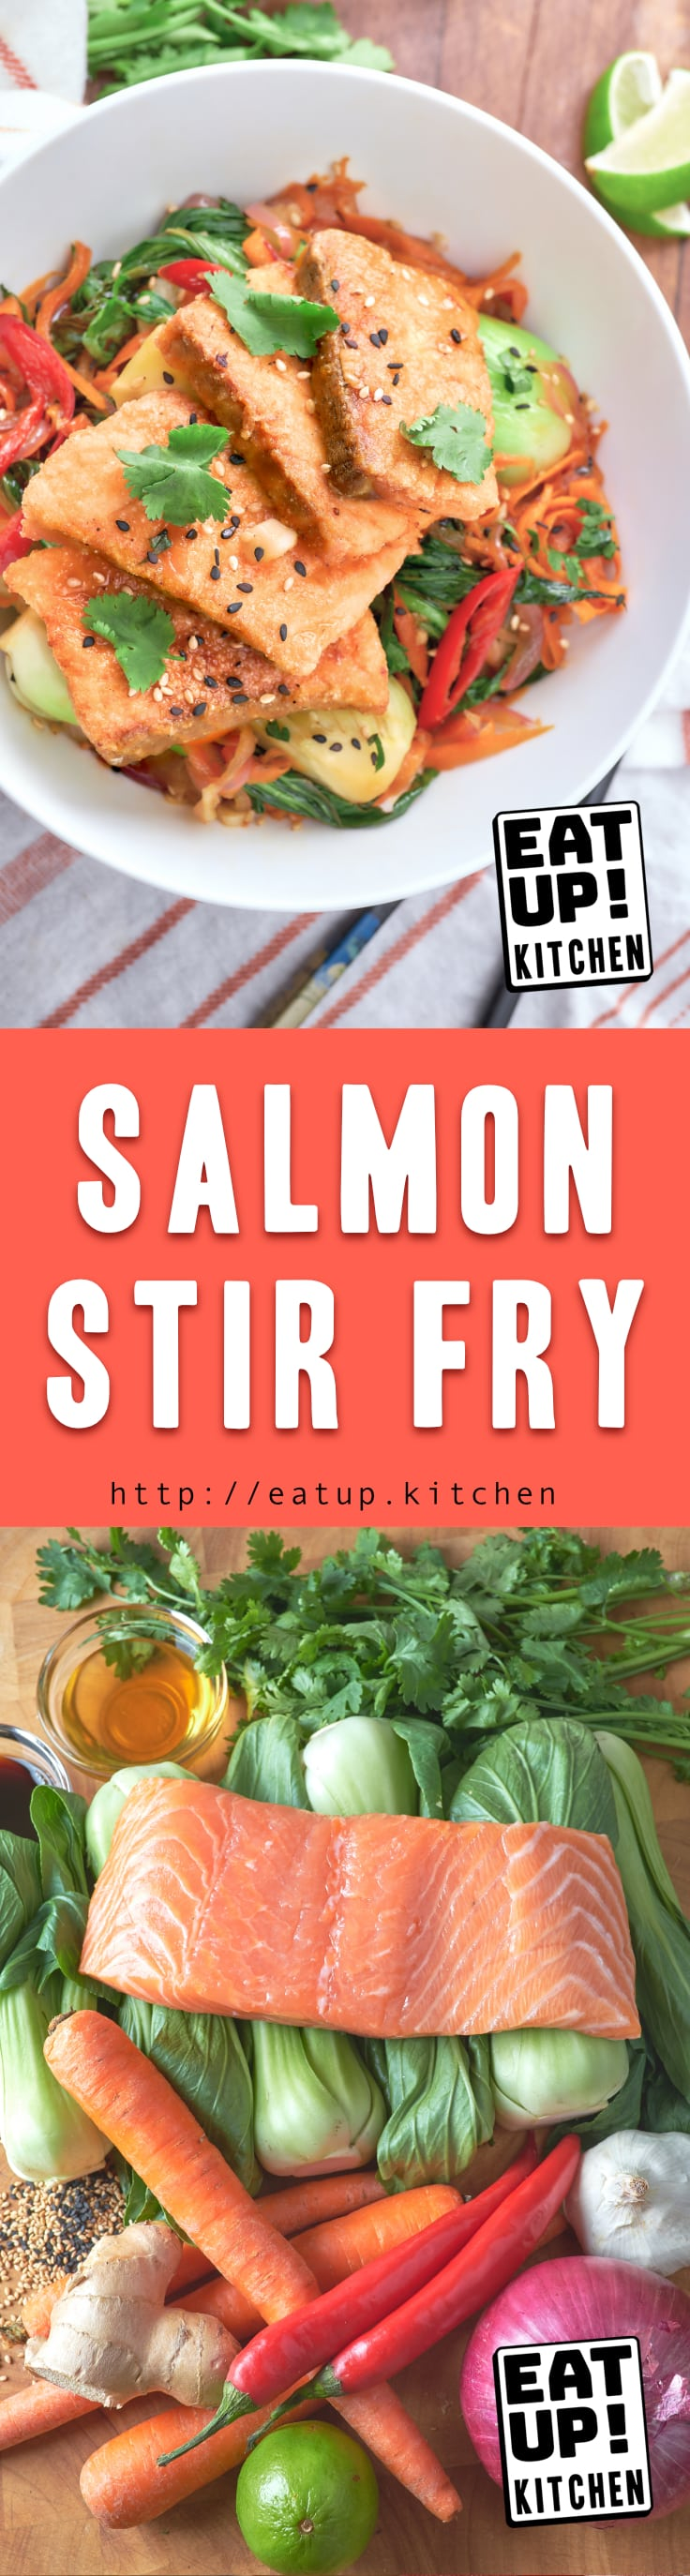 This simple crispy Salmon Stir Fry with Bok Choy and shredded Carrots is amazing. With just a light dusting of corn starch on some beautiful fatty salmon you can elevate this stir fry to something really special.